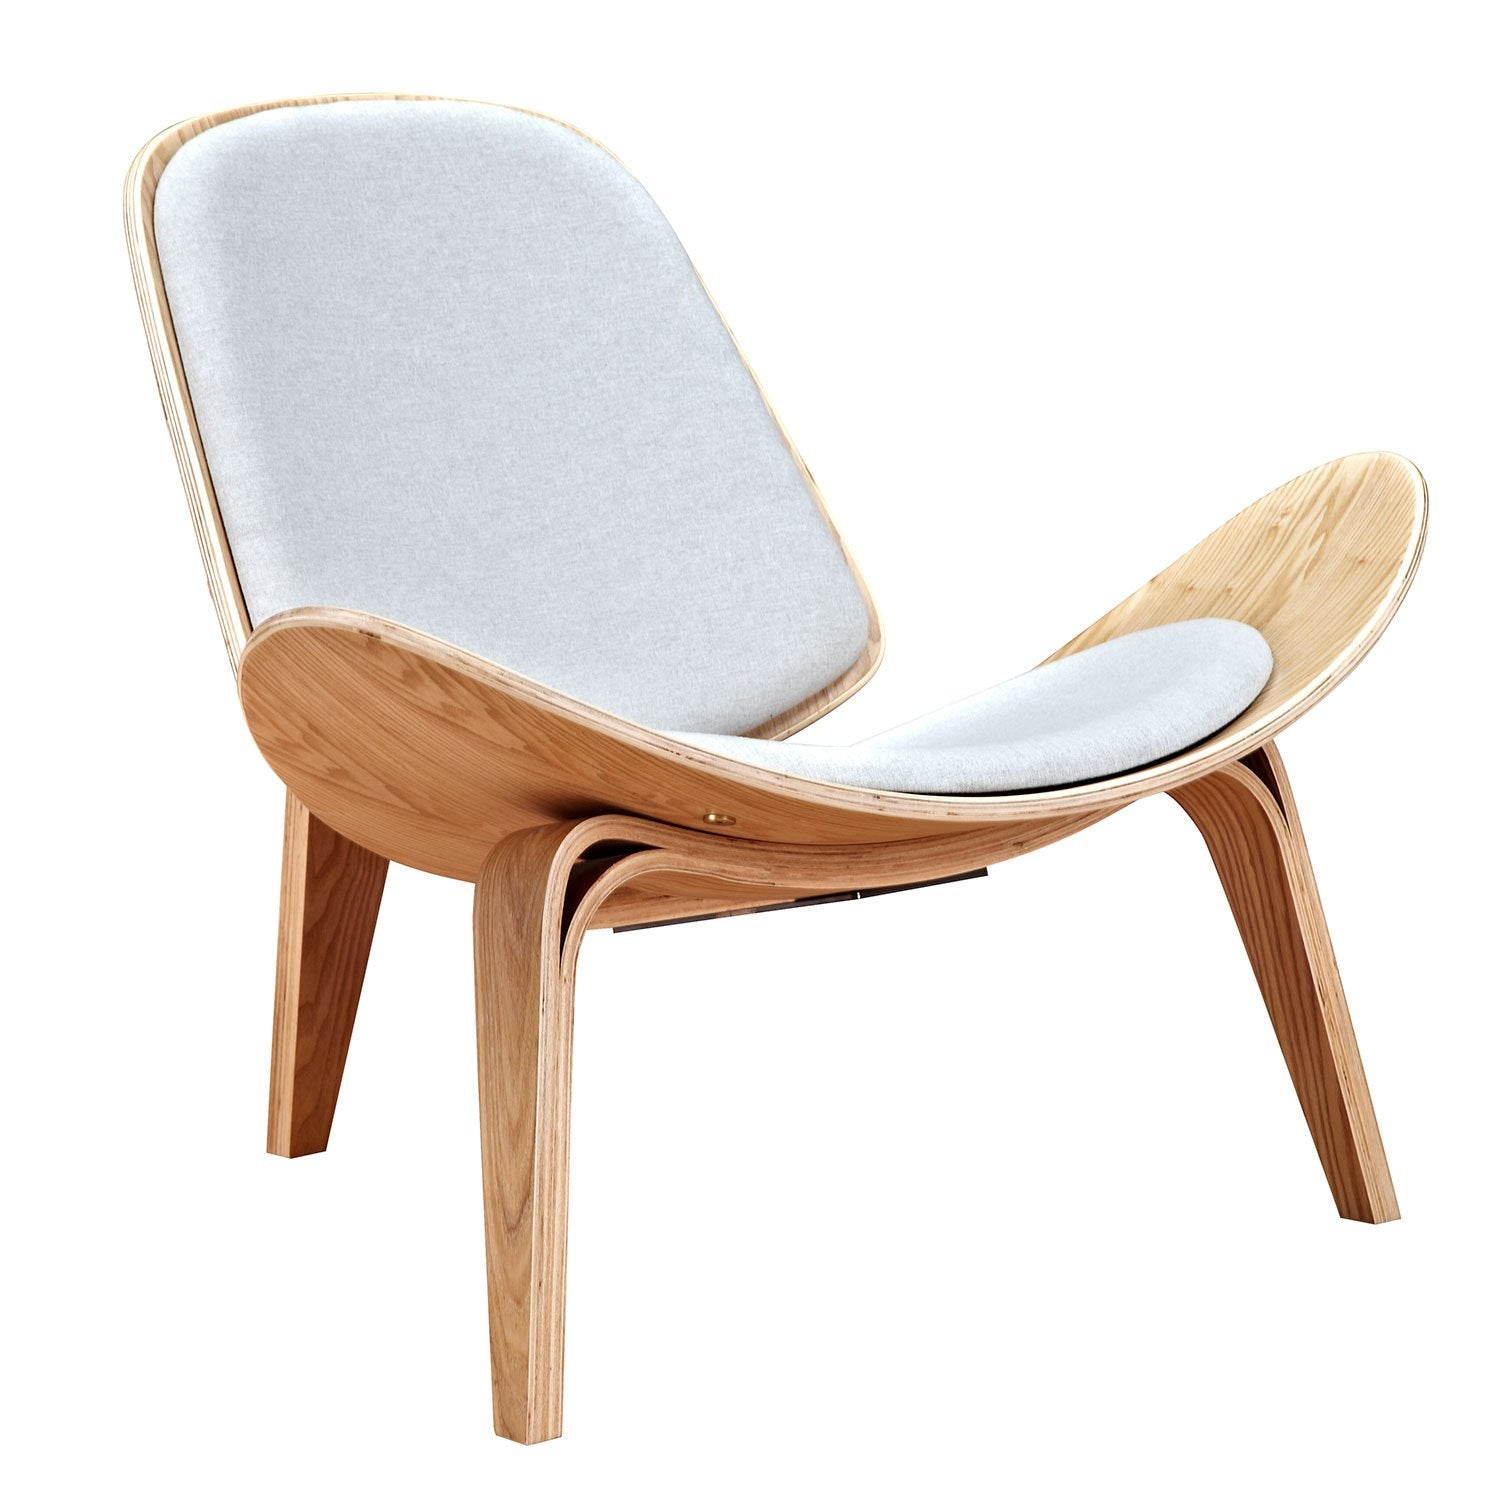 Shell Chair With Oatmeal Gray Fabric And Natural Finish Wood Frame Accent  Chairs Alan ...